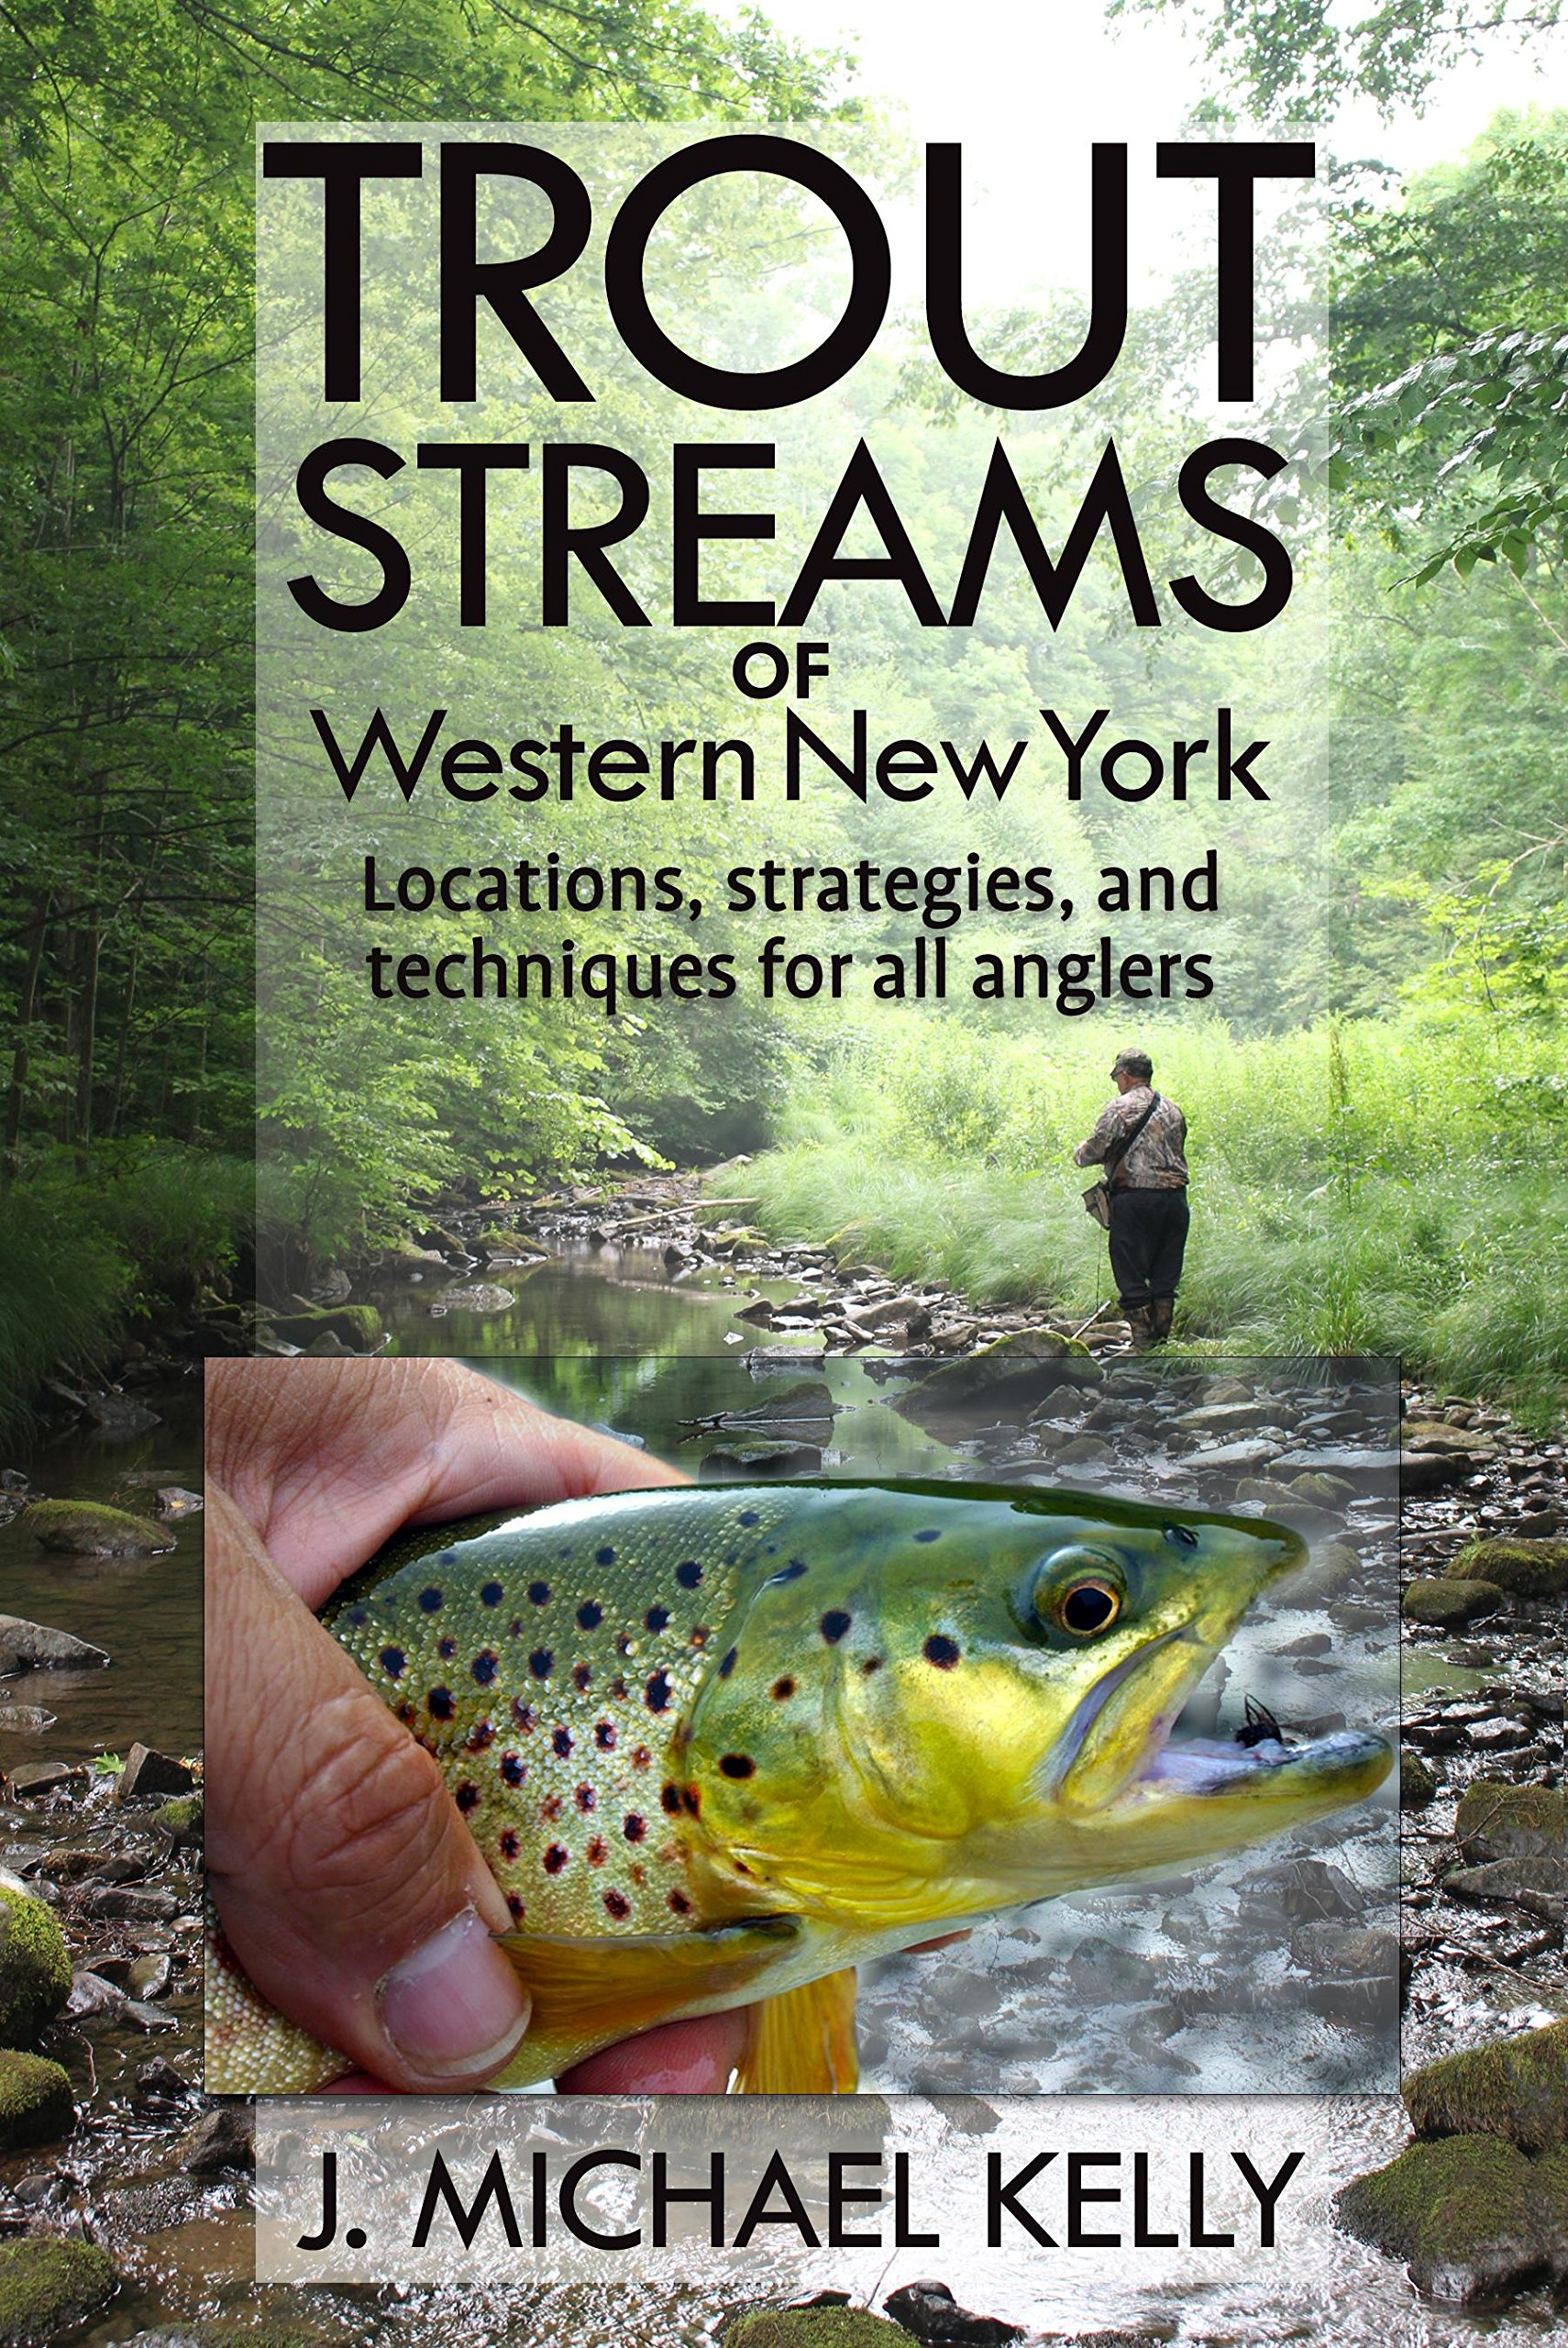 Trout Streams Of Western New York: Locations, Strategies and Techniques for All Anglers pdf epub